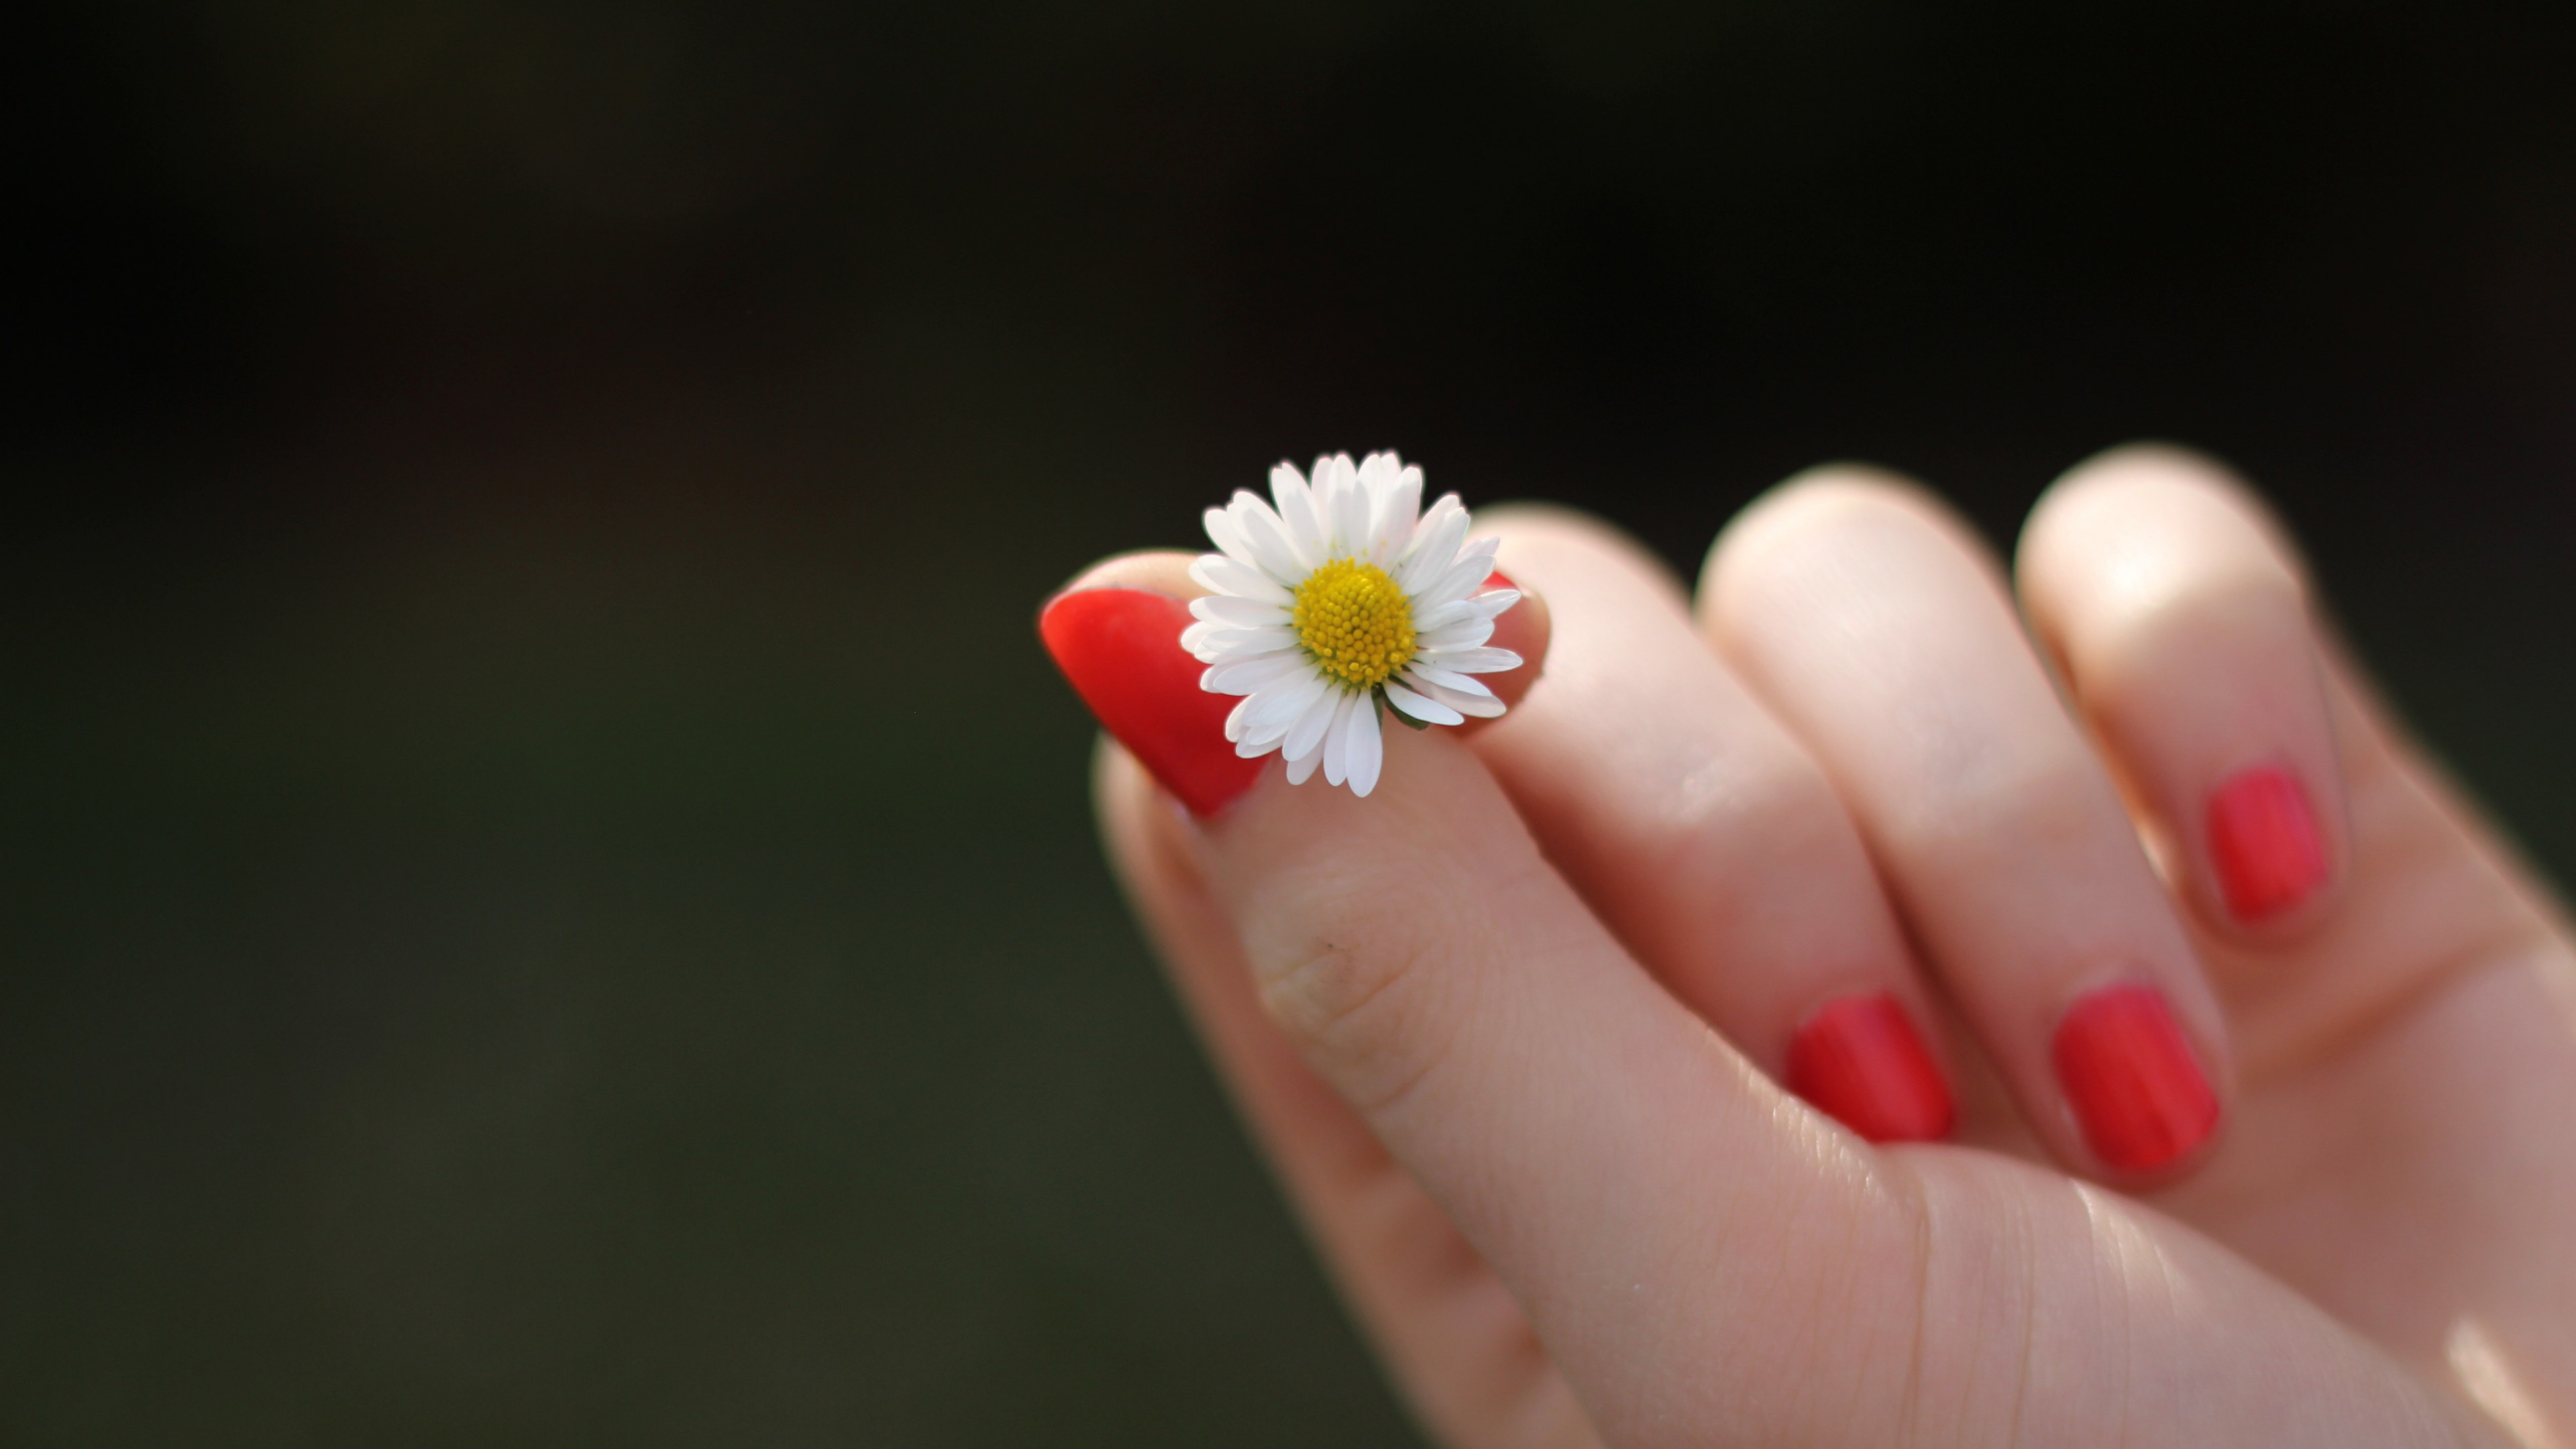 Girl with red nails and a daisy flower wallpaper 3840x2160